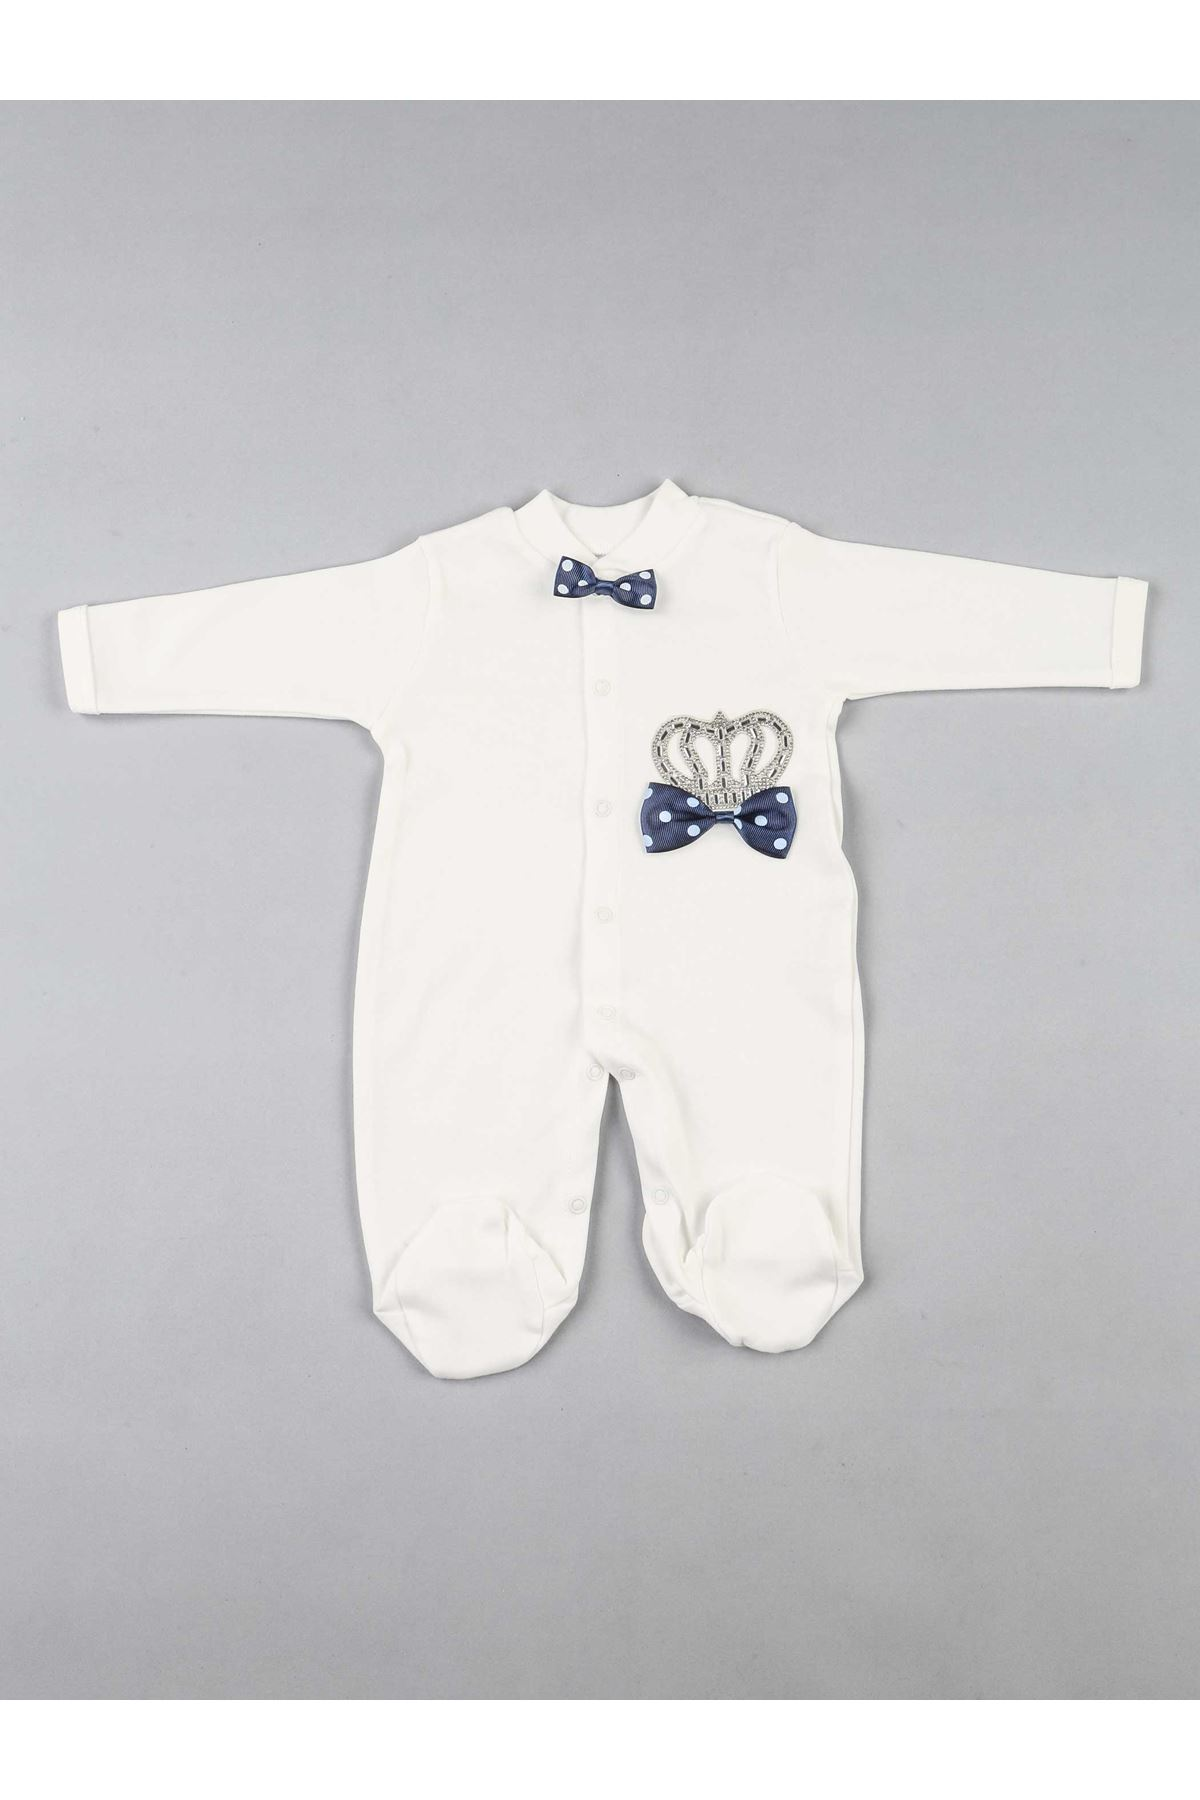 Navy blue king-crowned baby boy suit newborn hospital outlet rompers 3-piece cotton overalls gloves hat sets fashion style